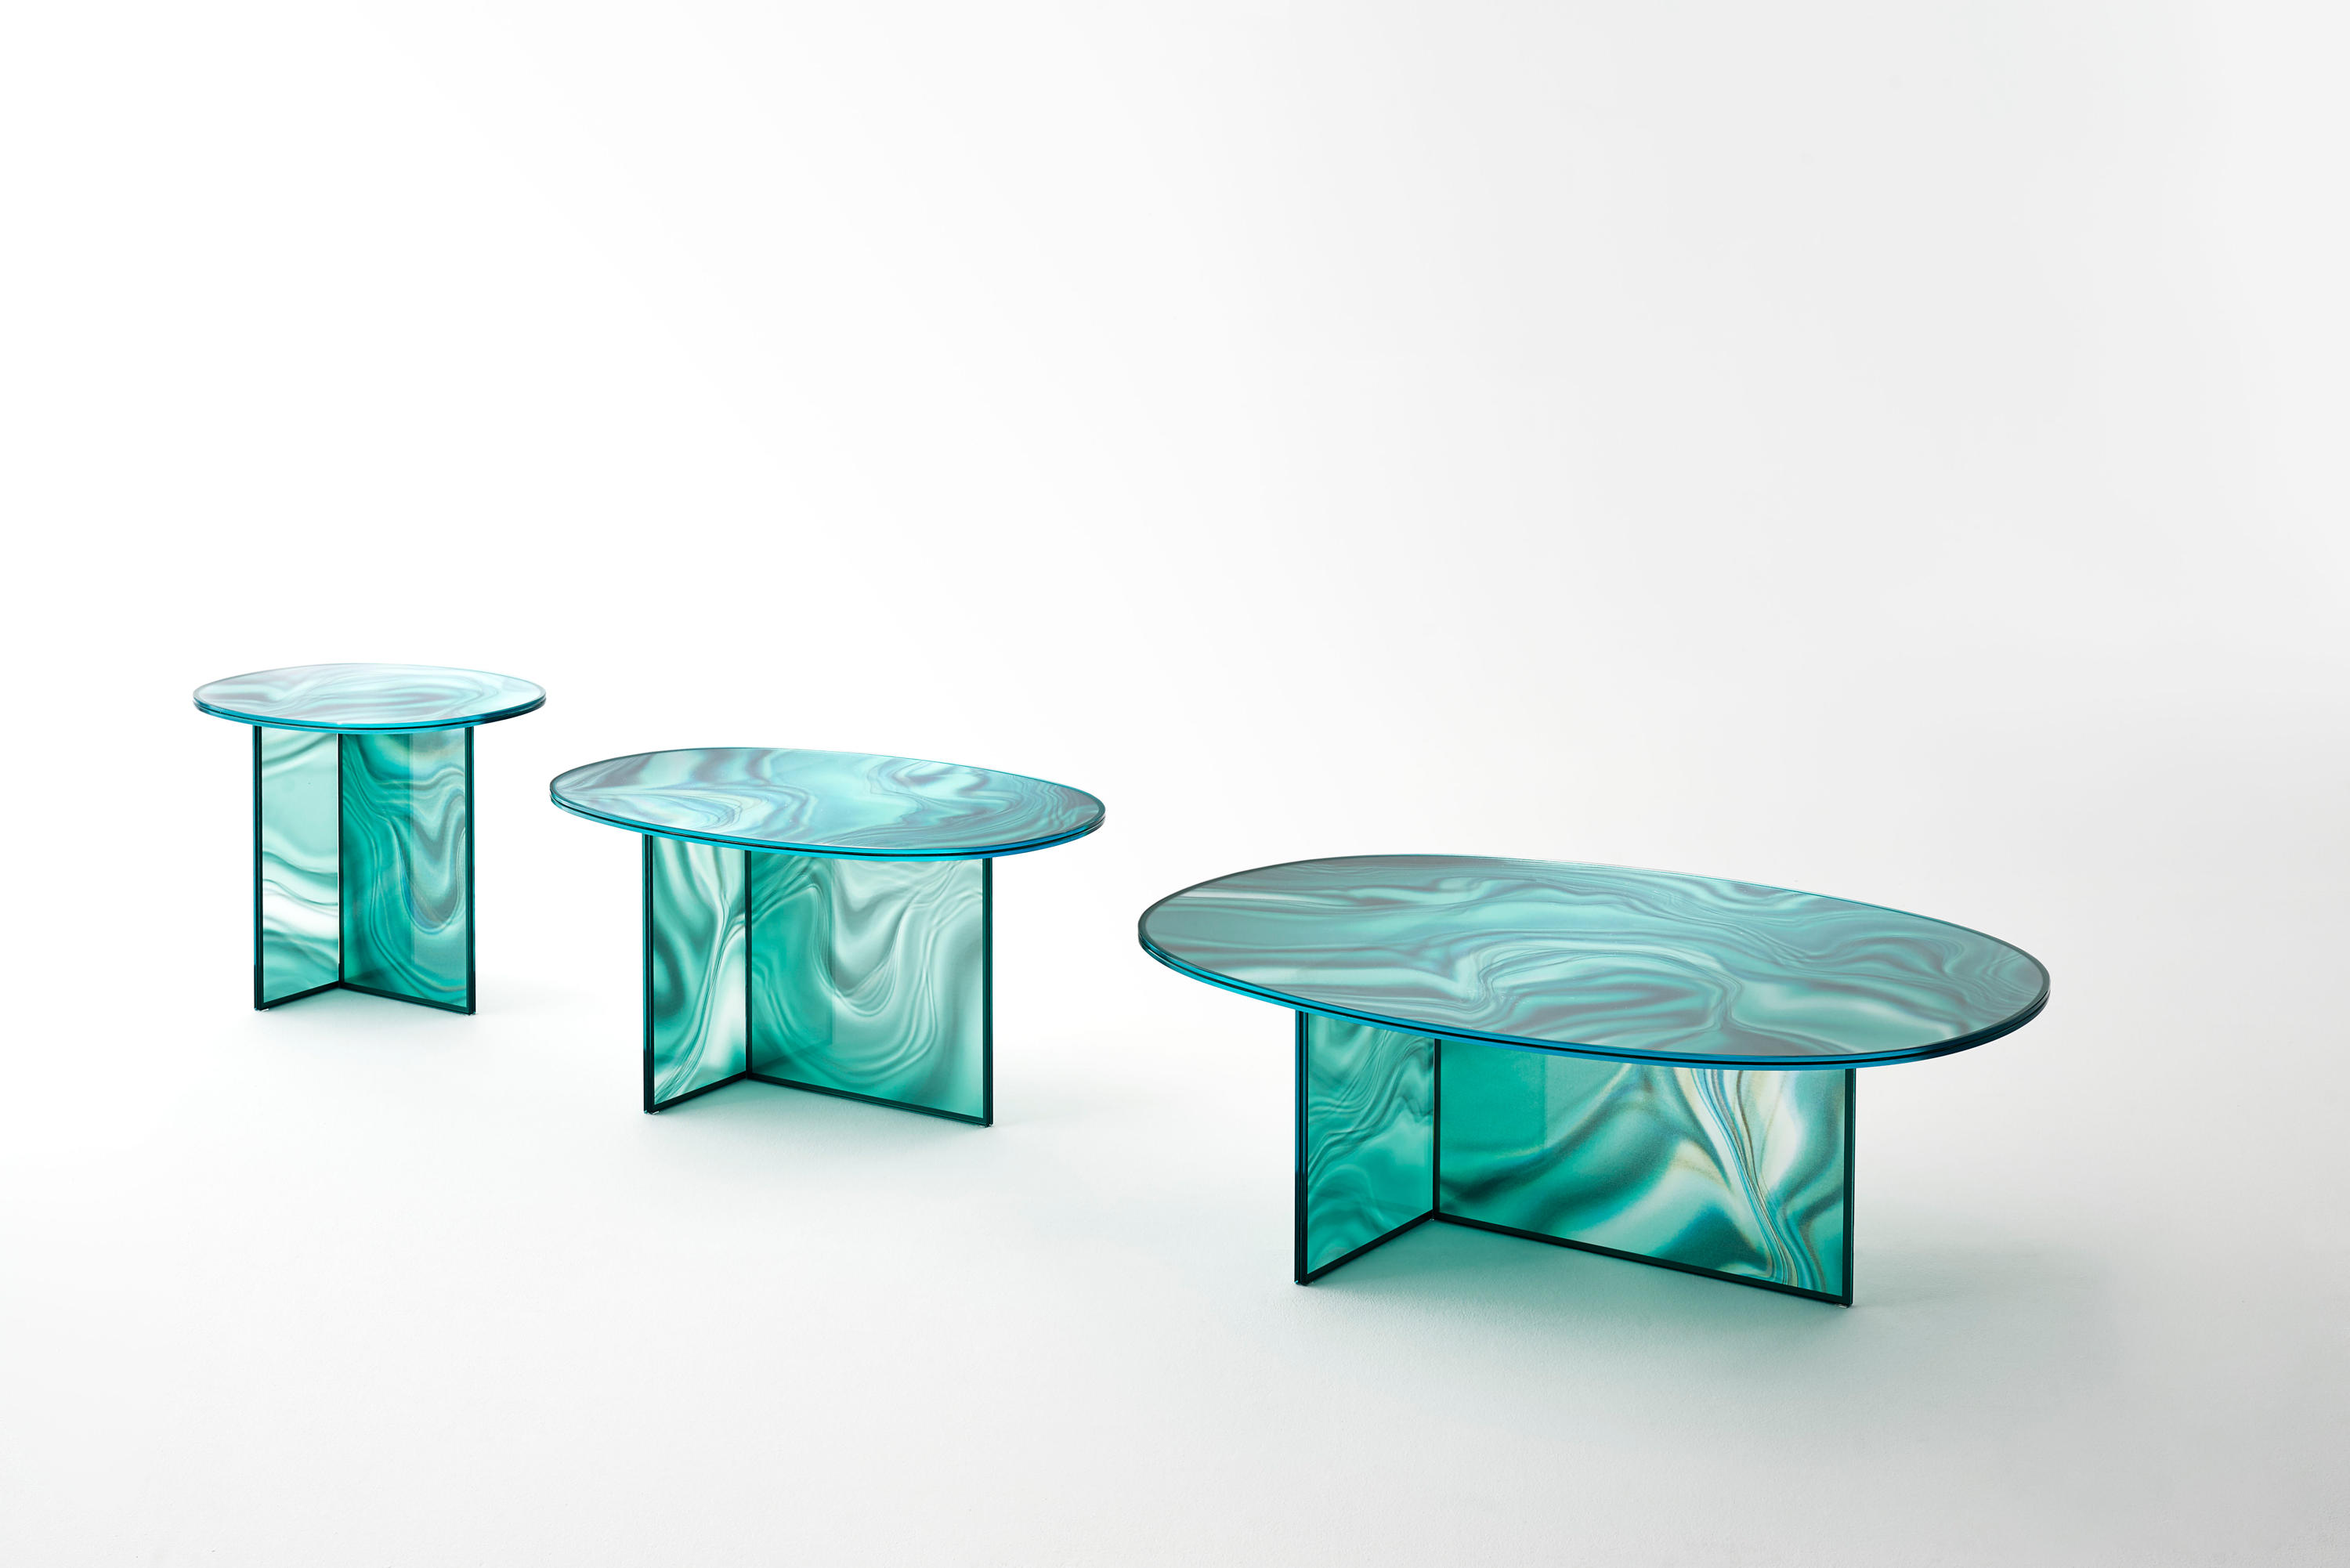 liquefy dining tables from glas italia architonic. Black Bedroom Furniture Sets. Home Design Ideas